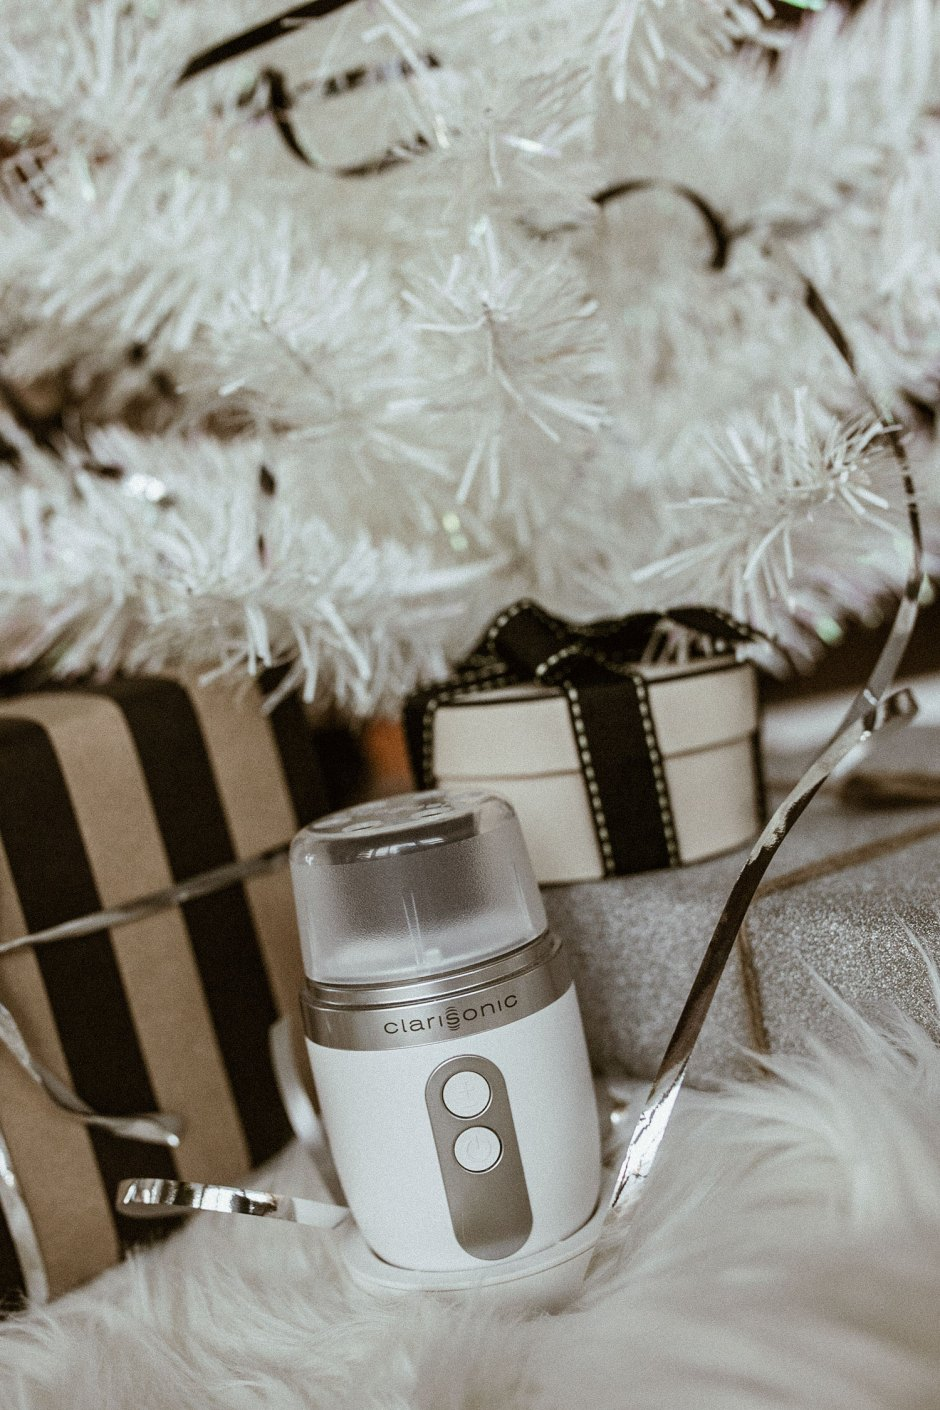 12 Days of Giveaways 2017